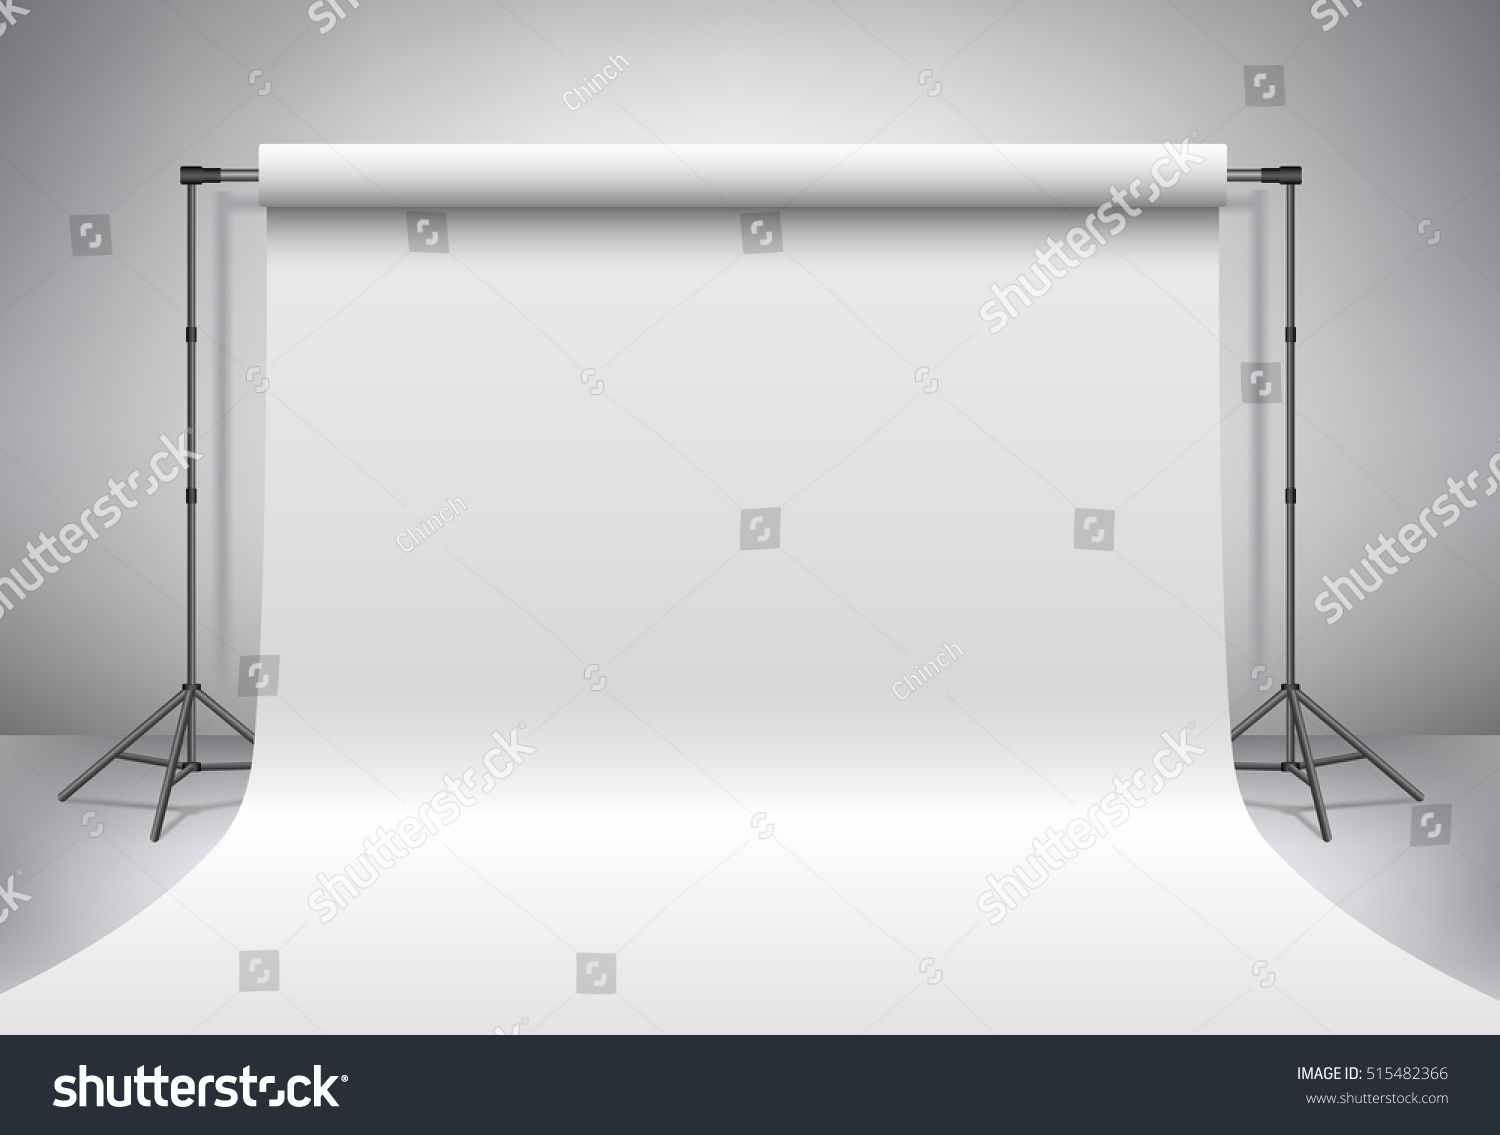 Download Free Mock Up Exhibition Stand : Empty photo studio realistic d template stock vector